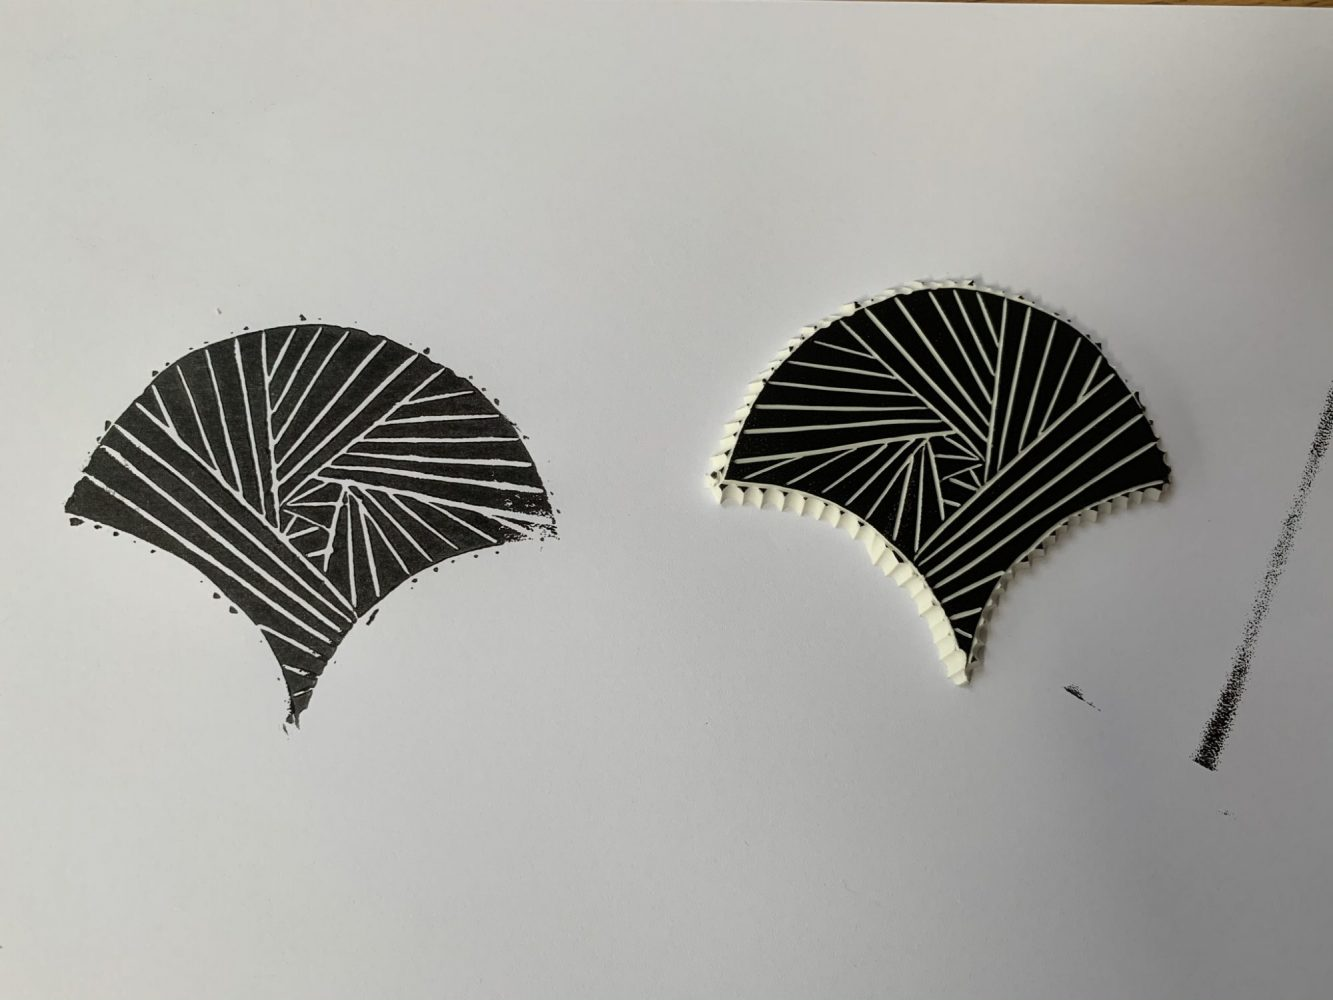 Fan image printed in black onto paper next to mastercut stamp